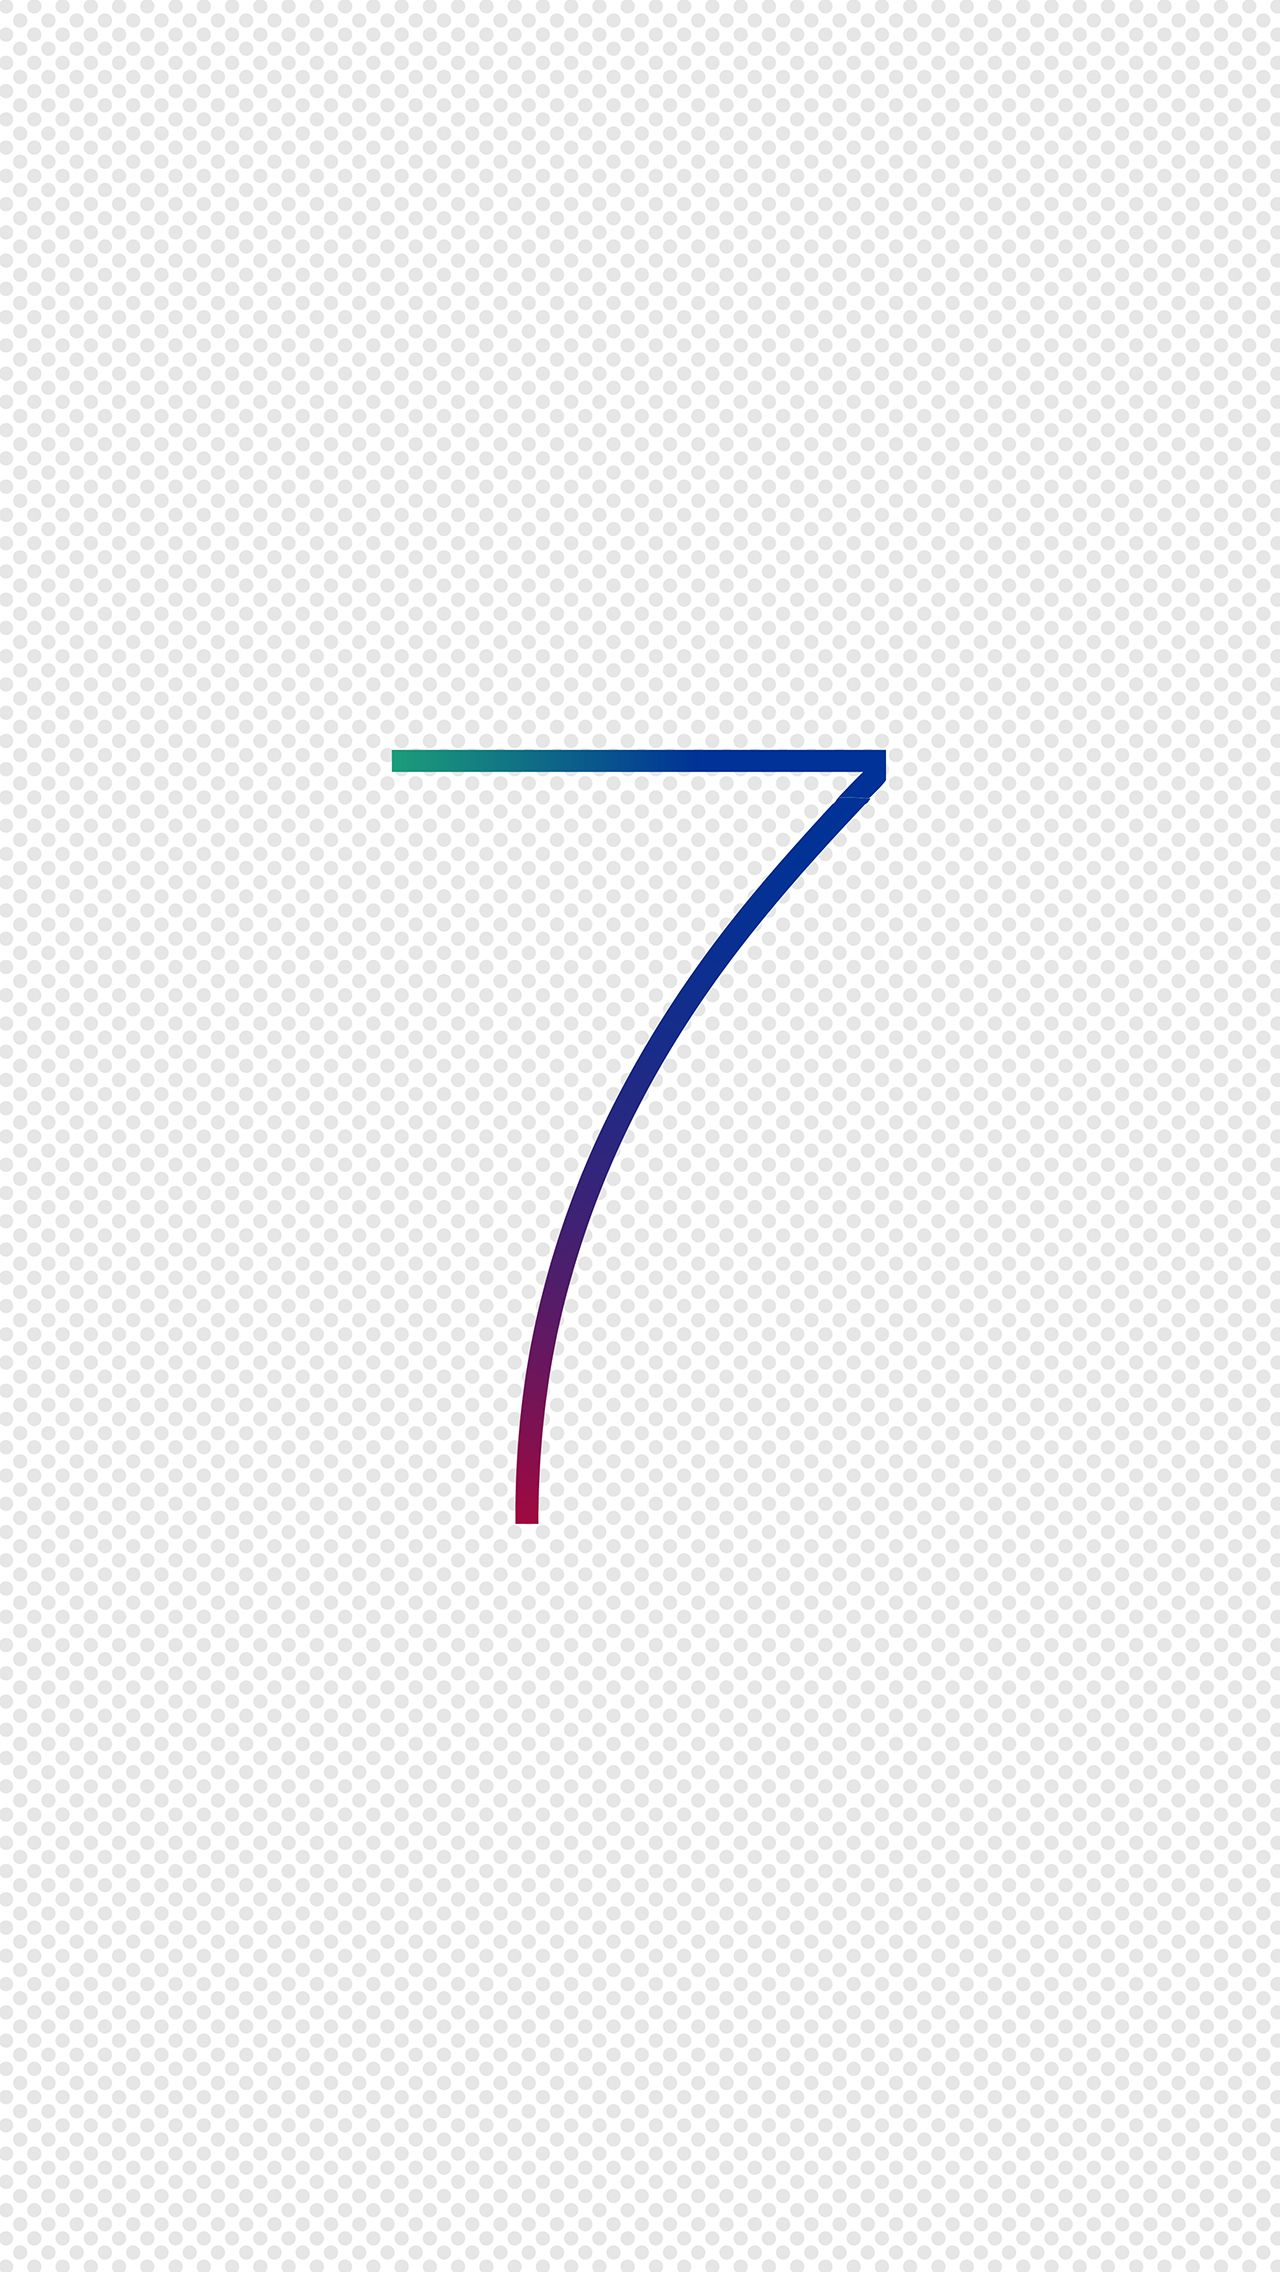 iPhone 5 Wallpaper  Apple iOS 7 WWDC 2013 Edition